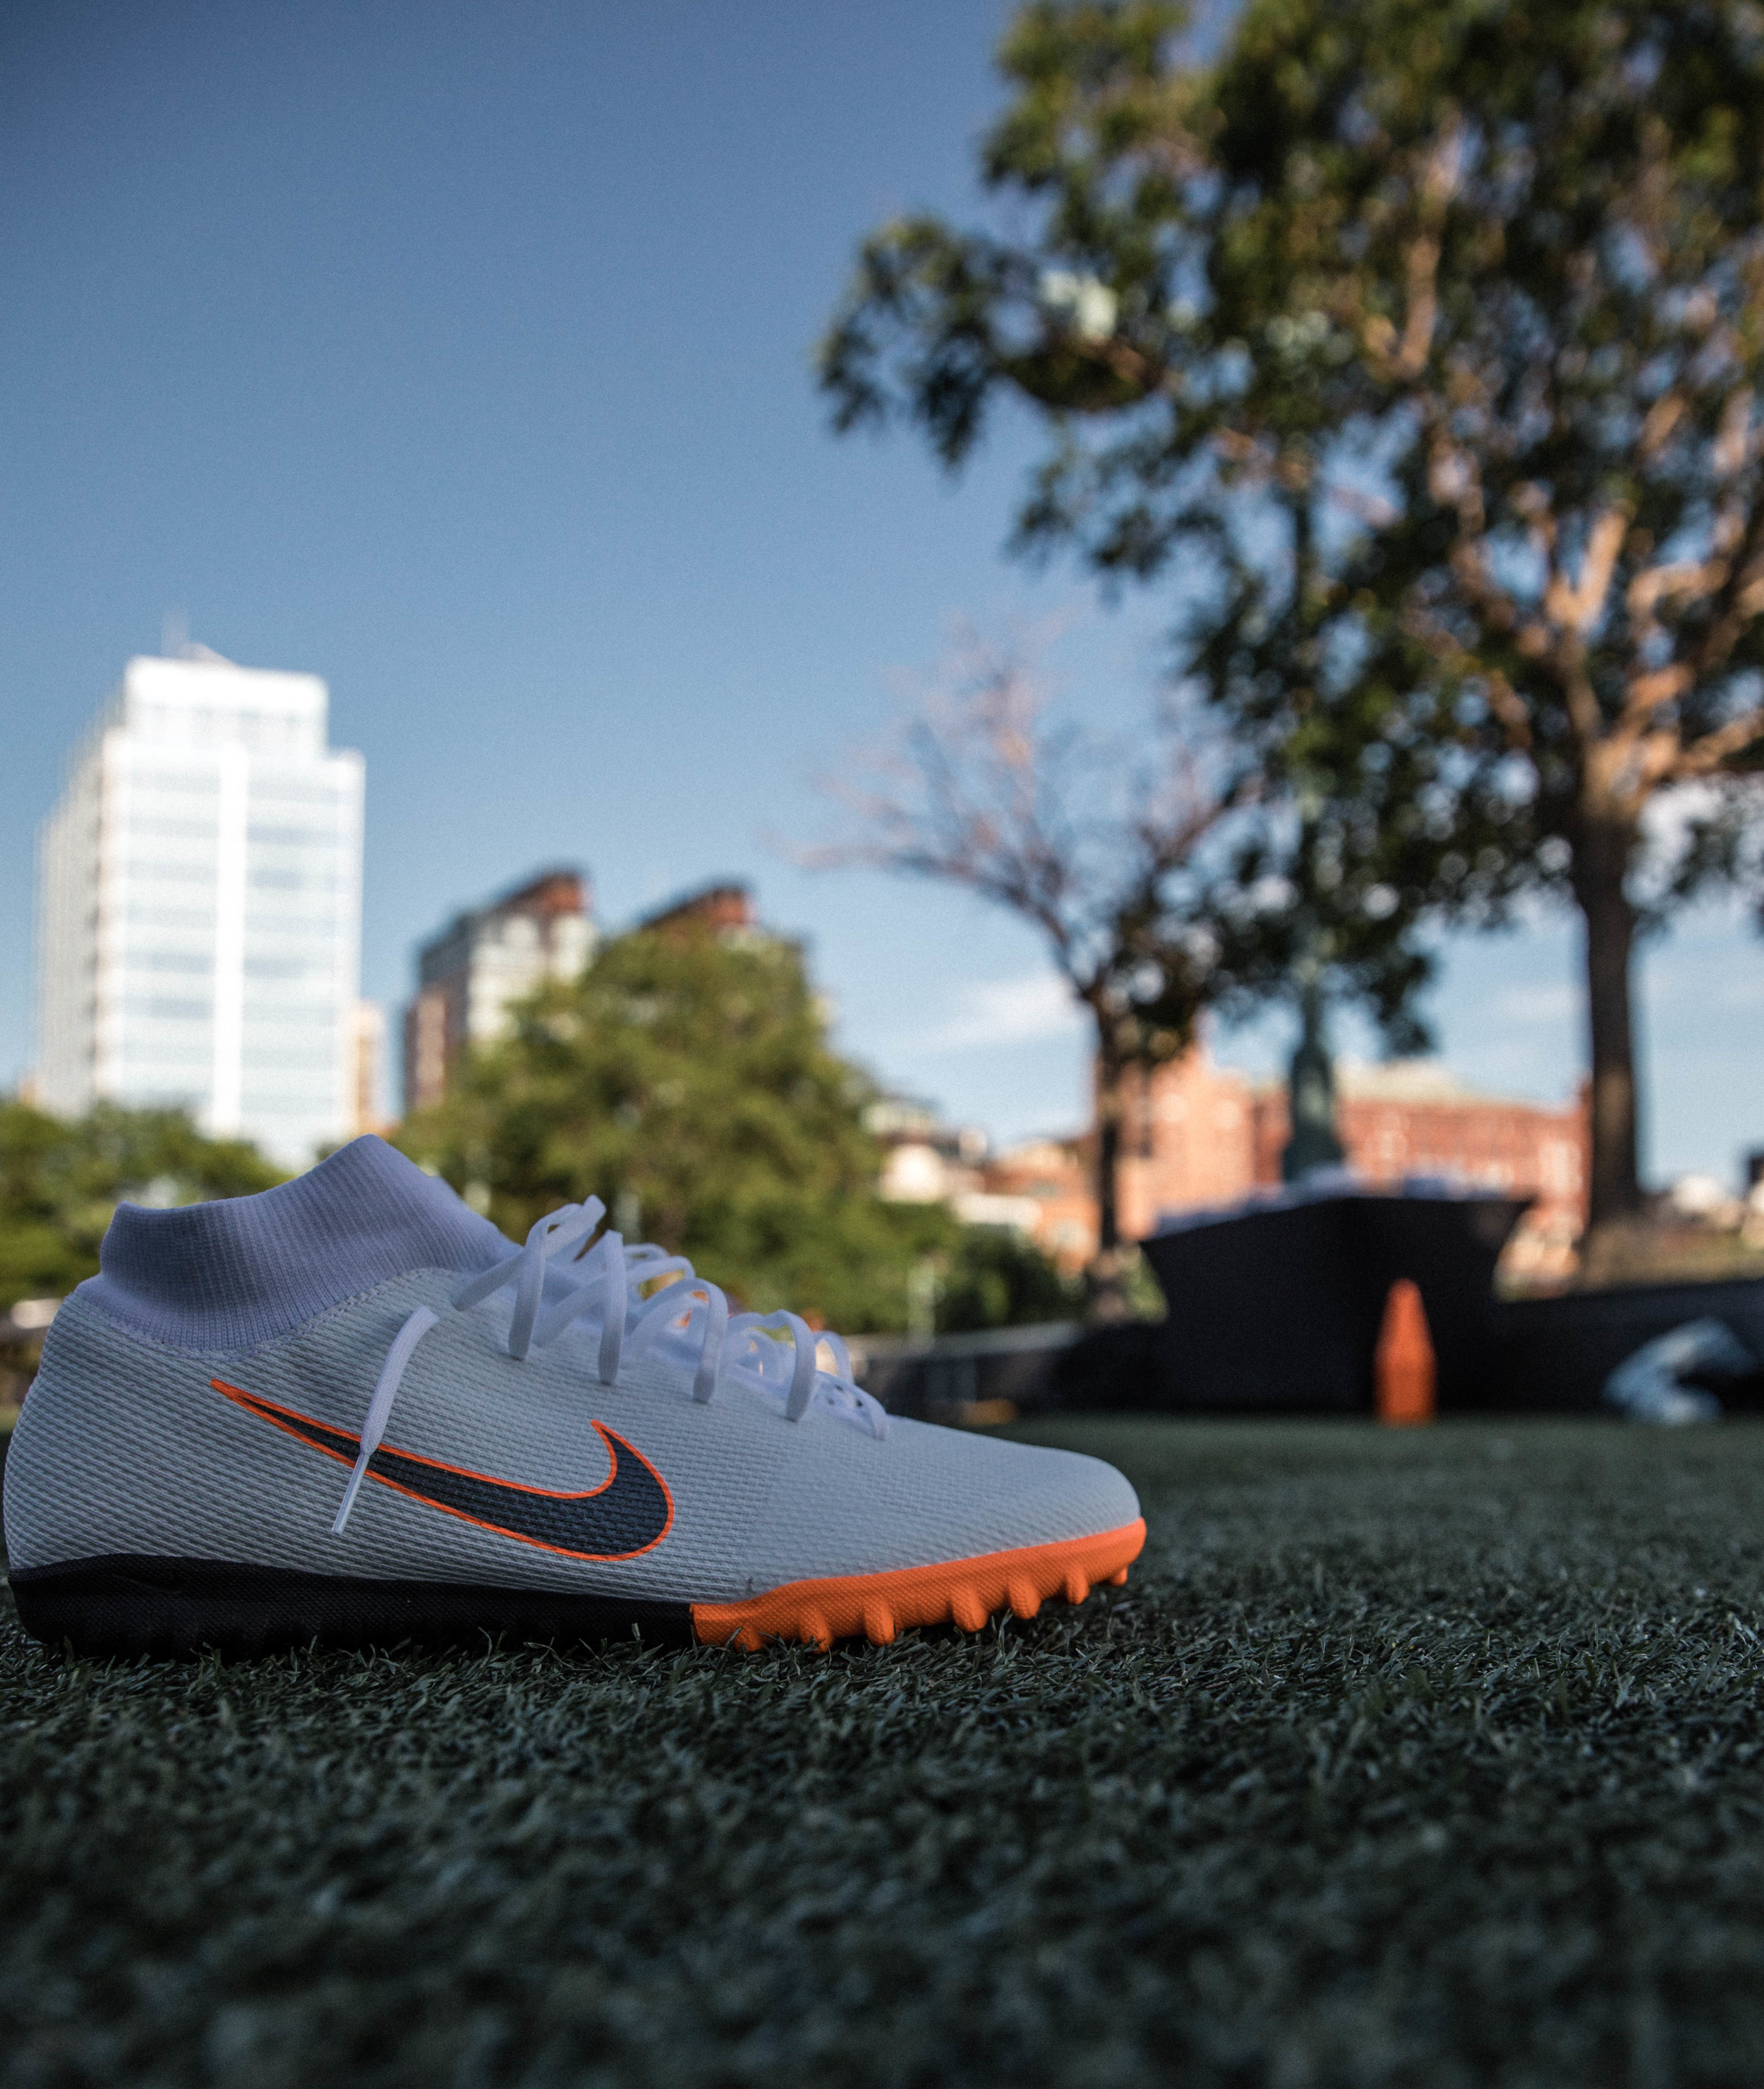 Football_Mon_Amour_Nike_NYC_11.jpg